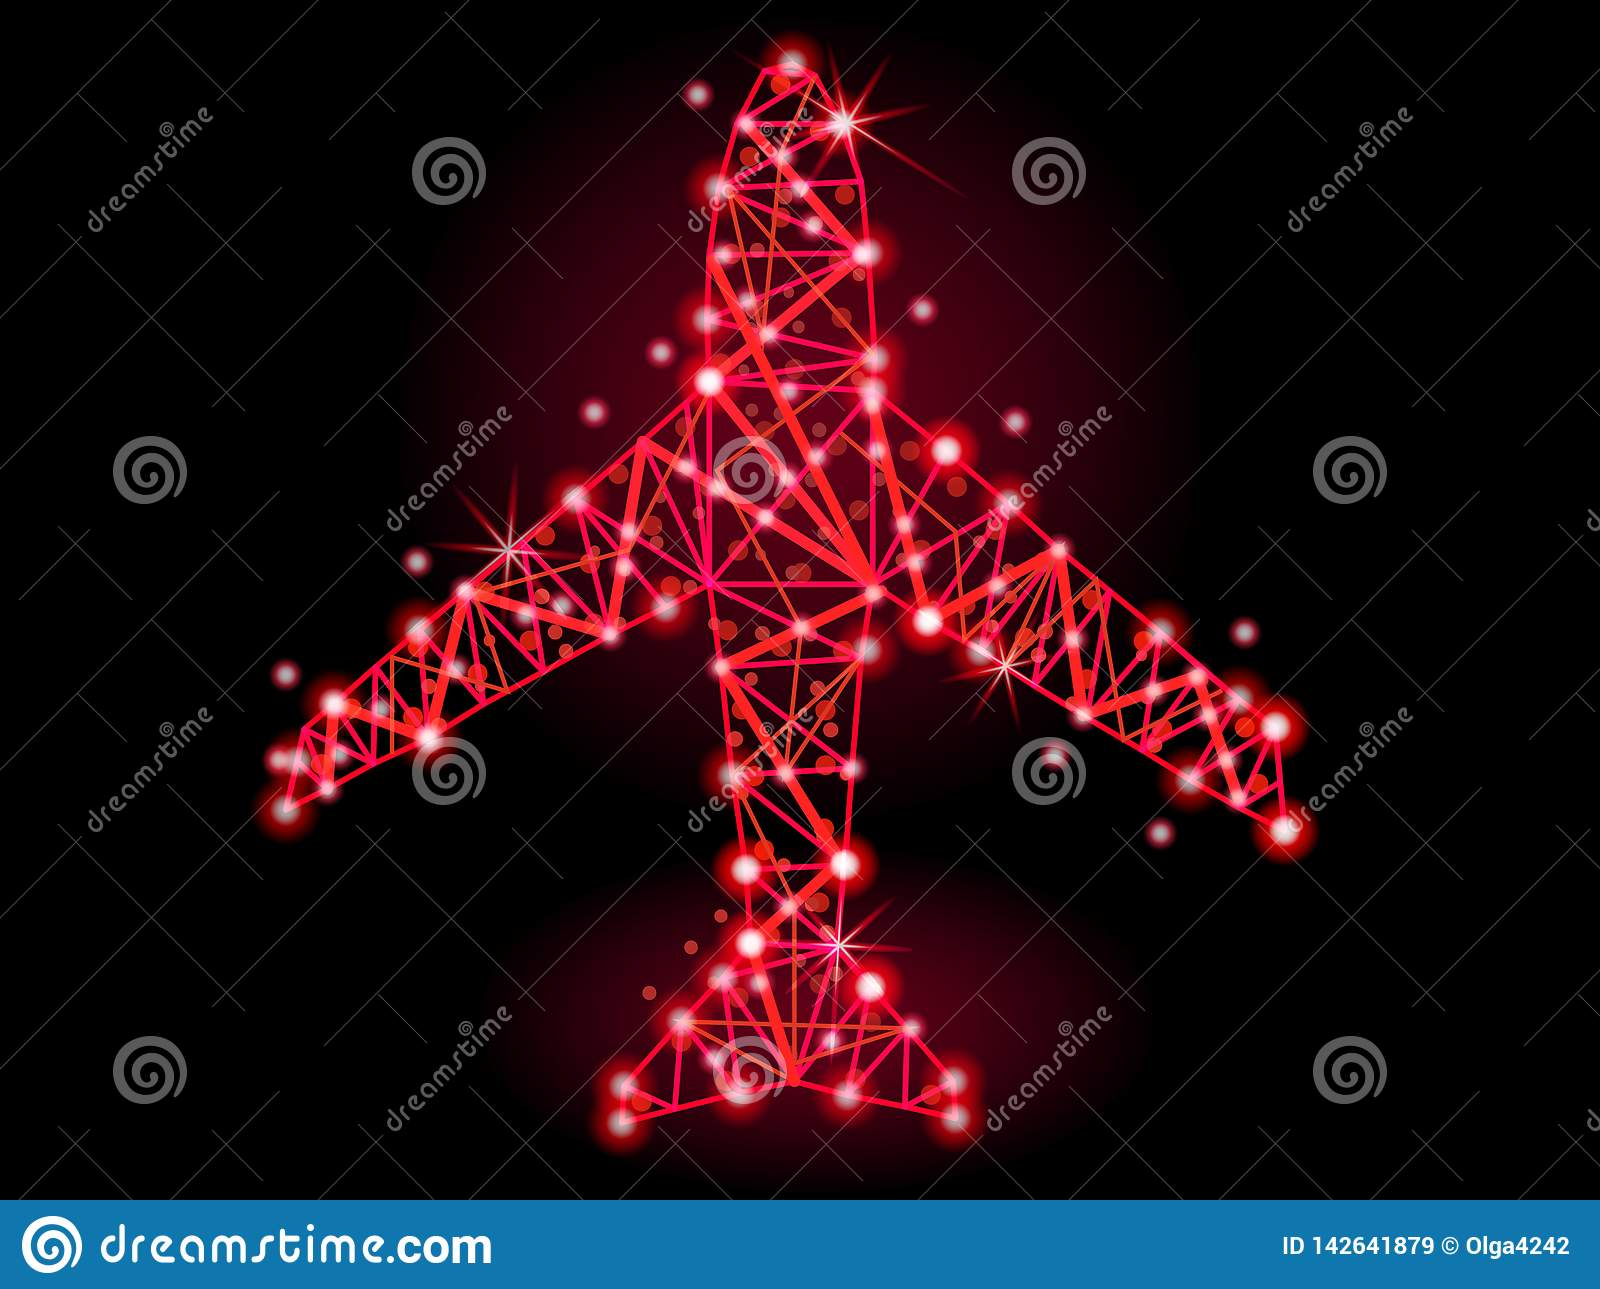 Vector illustration. The plane of the polygonal lines